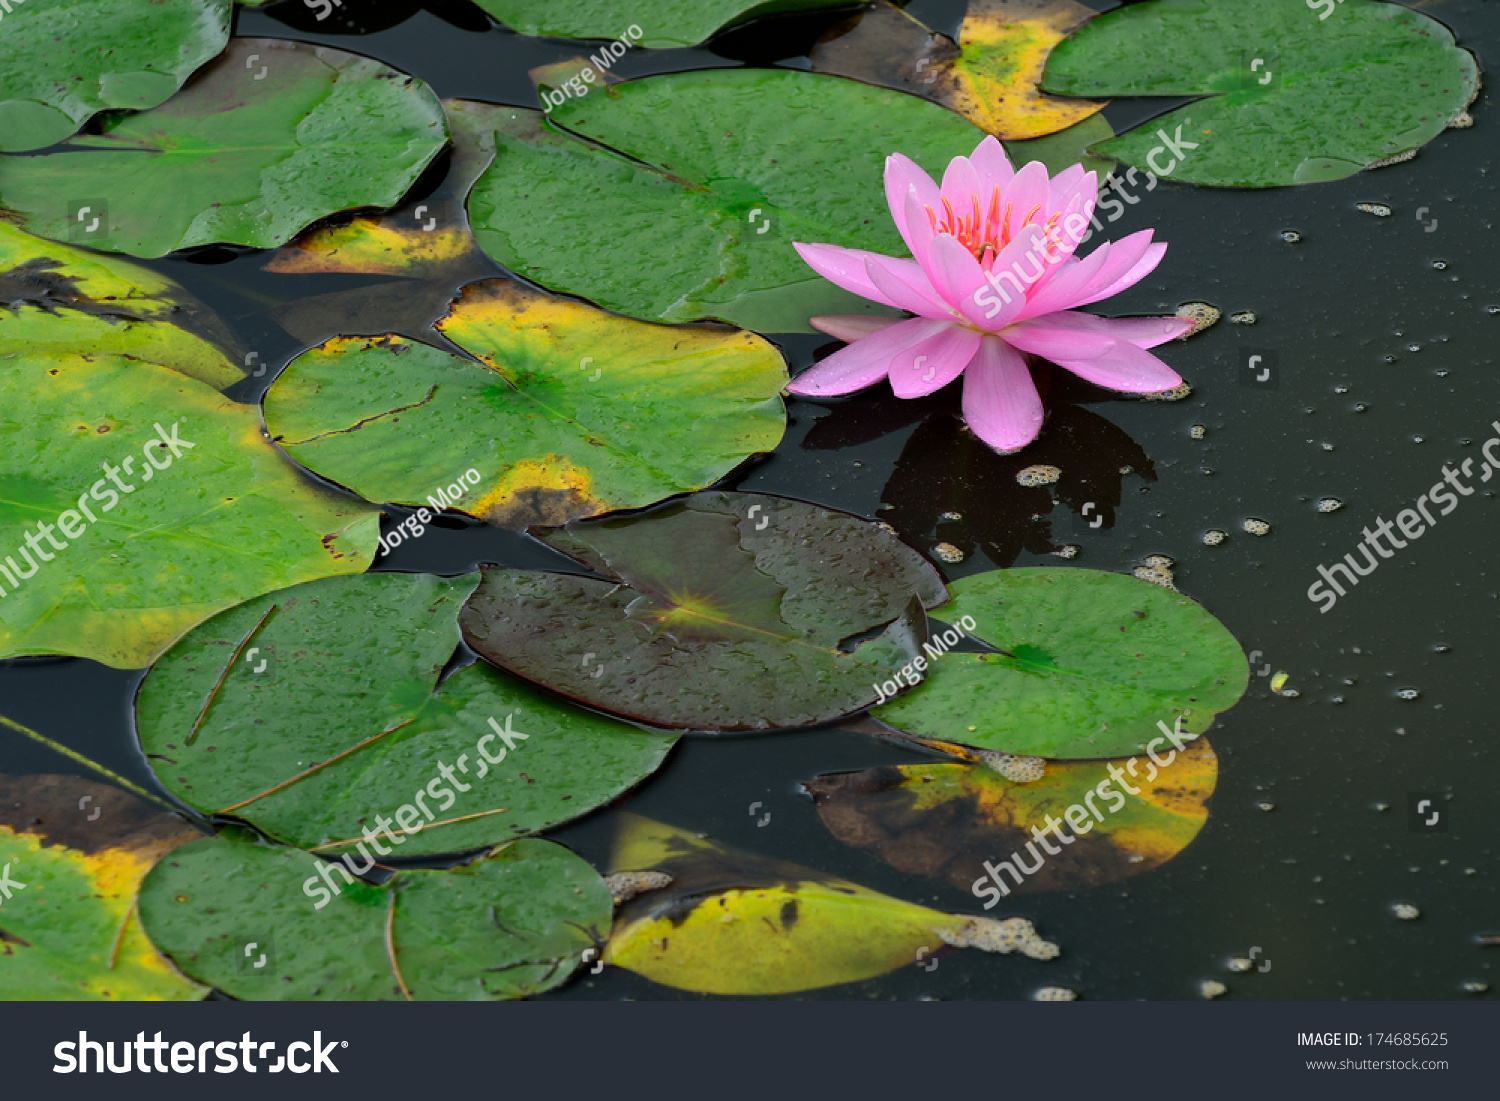 Fresh beautiful pink lotus flower growing stock photo edit now a fresh beautiful pink lotus flower growing among large green lilly pads after a summer shower izmirmasajfo